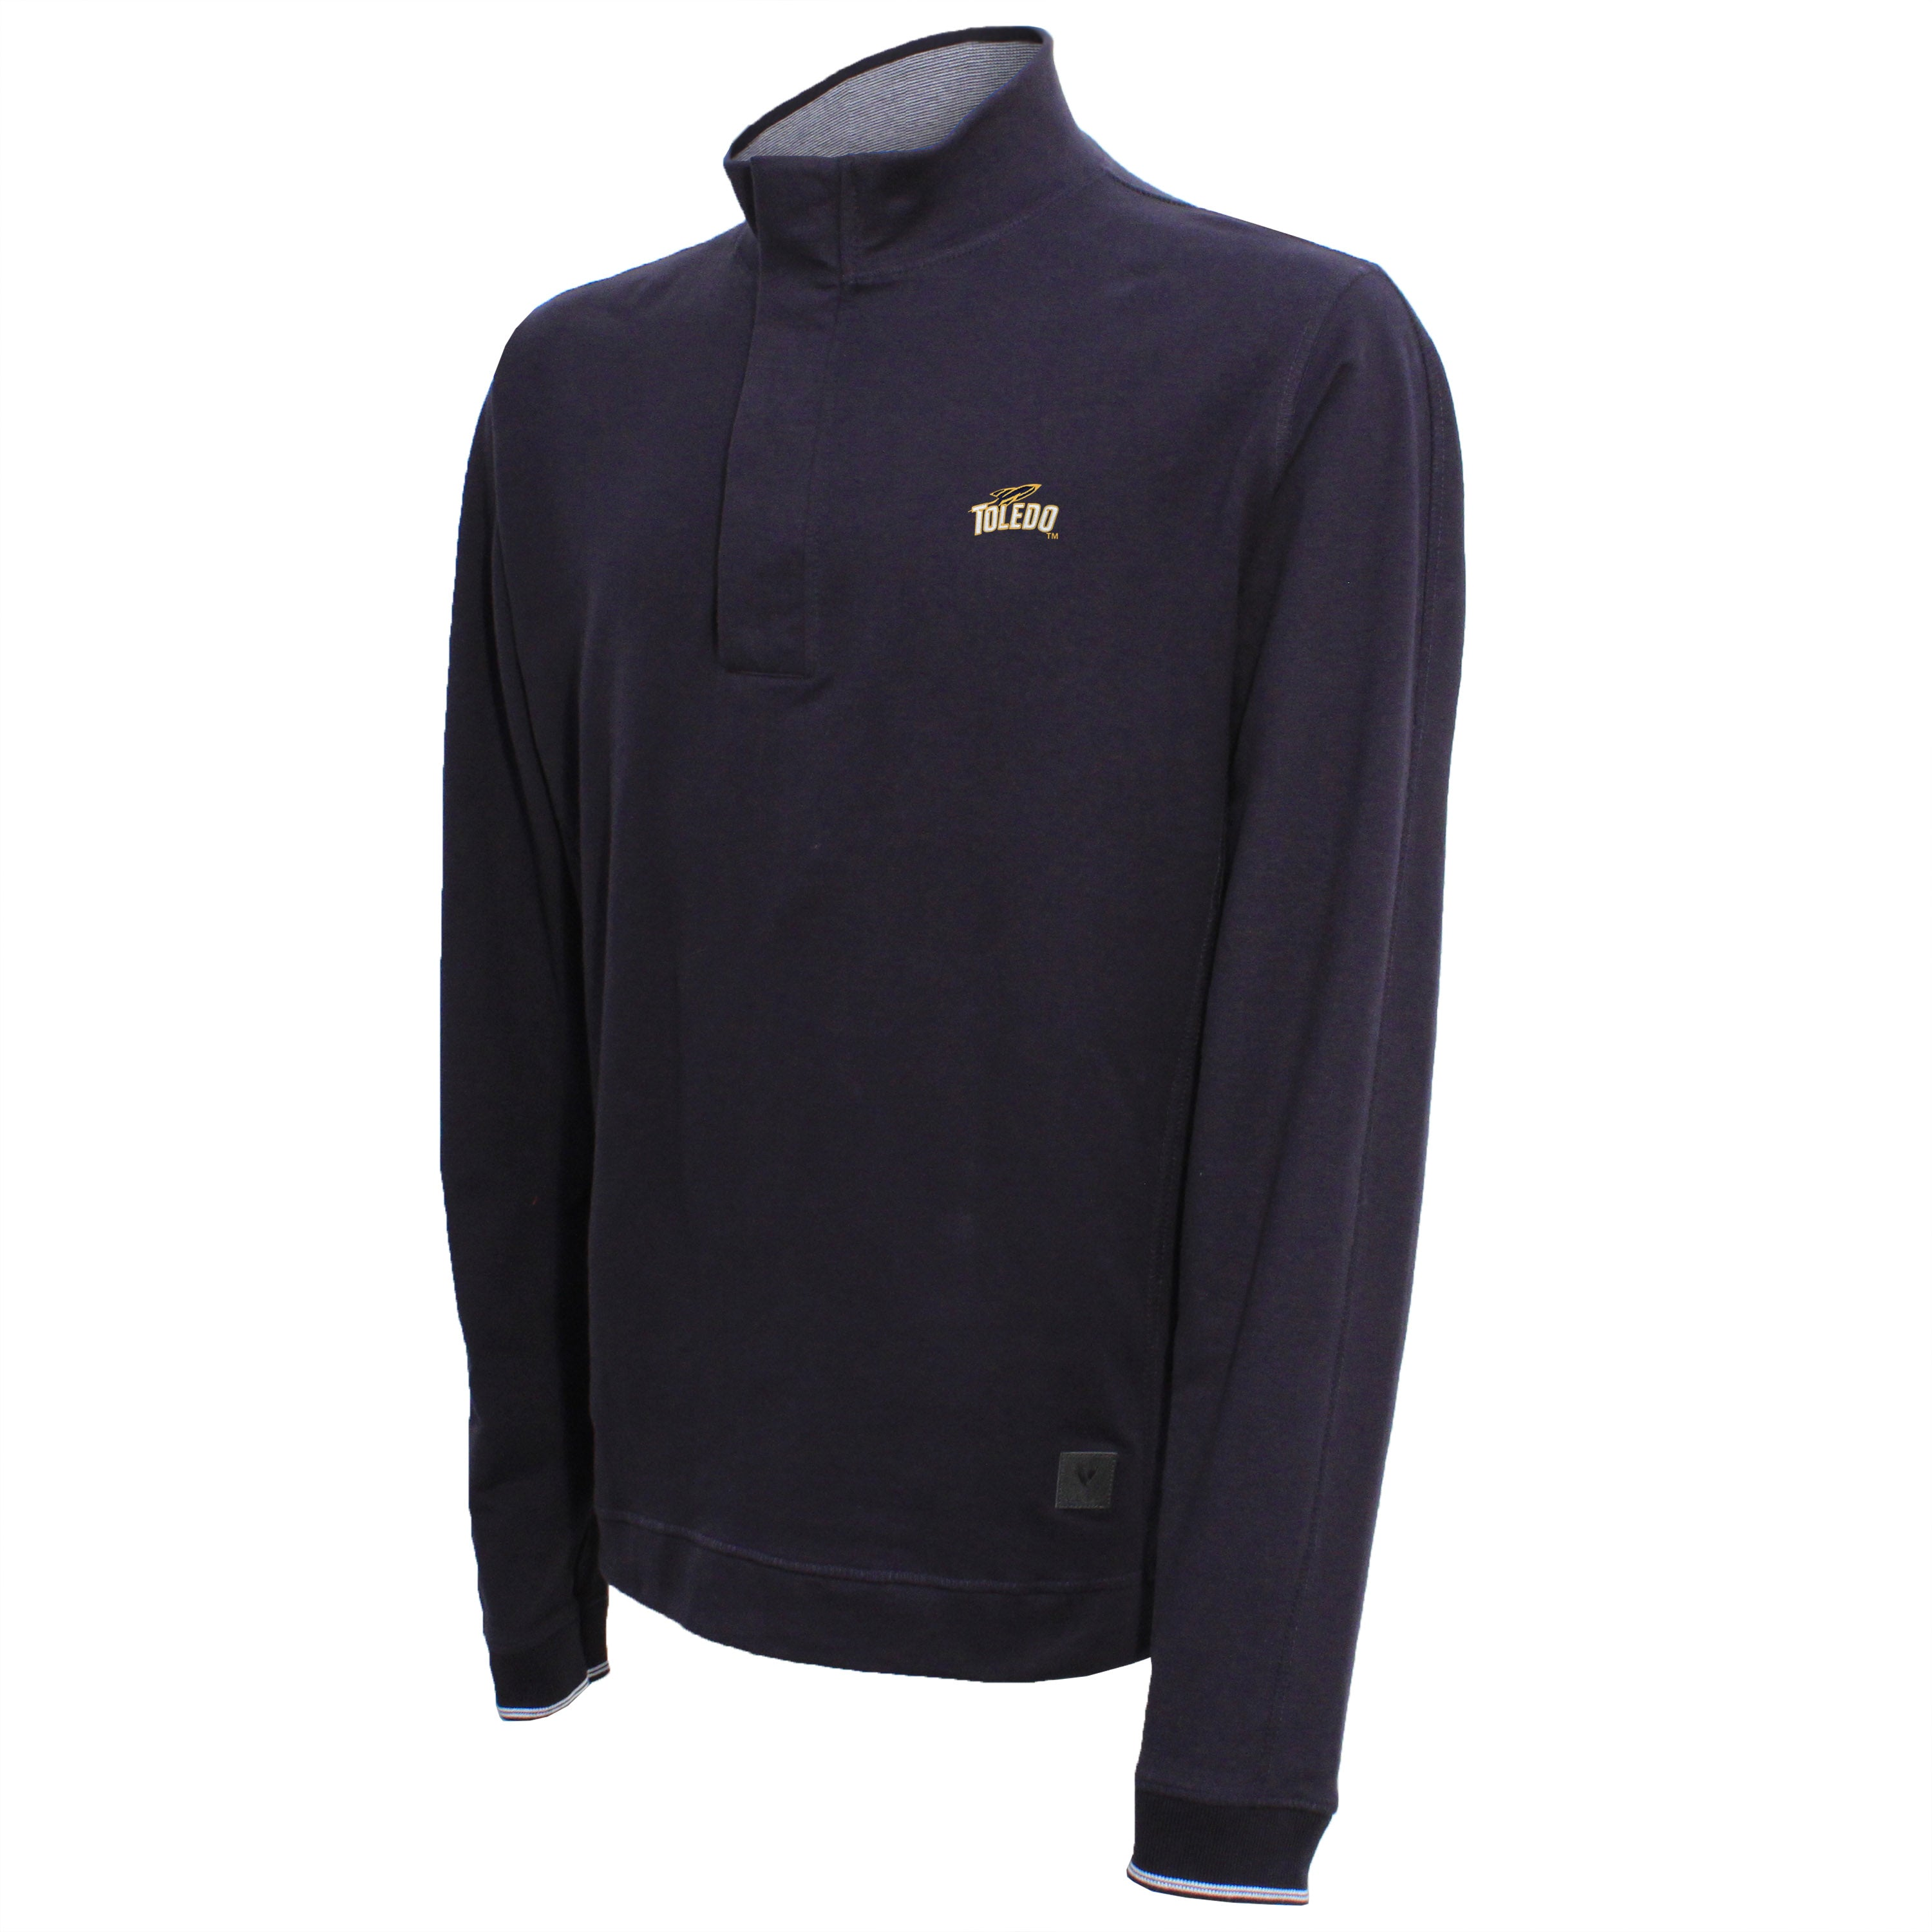 Vesi Toledo Men's Navy Quarter Zip Pullover